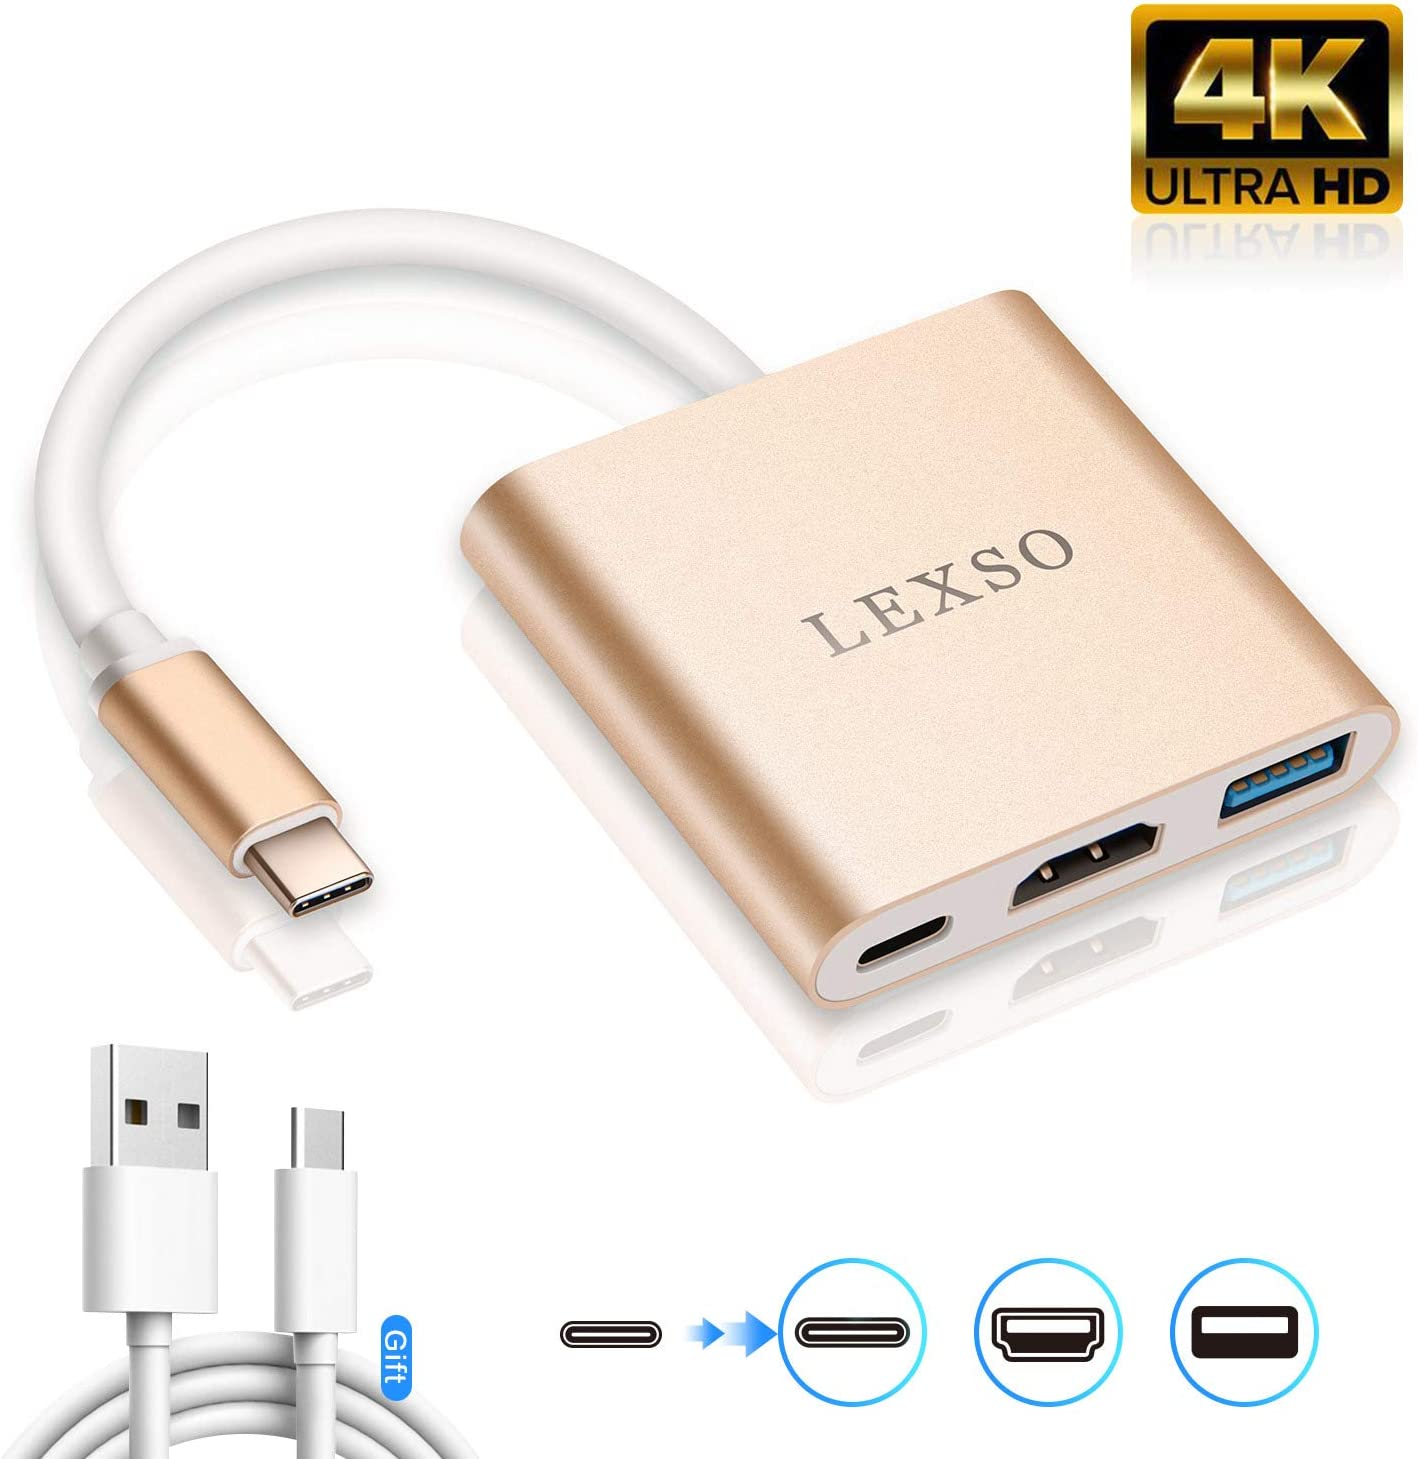 USB 3.1 Type C to HDMI 4K Multiport AV Converter with USB 3.0 Port and USB C Charging Port Compatible MacBook//Chromebook Pixel//Dell XPS13//Samsung Galaxy s8//s8 Plus USB-C to HDMI Adapter Silver